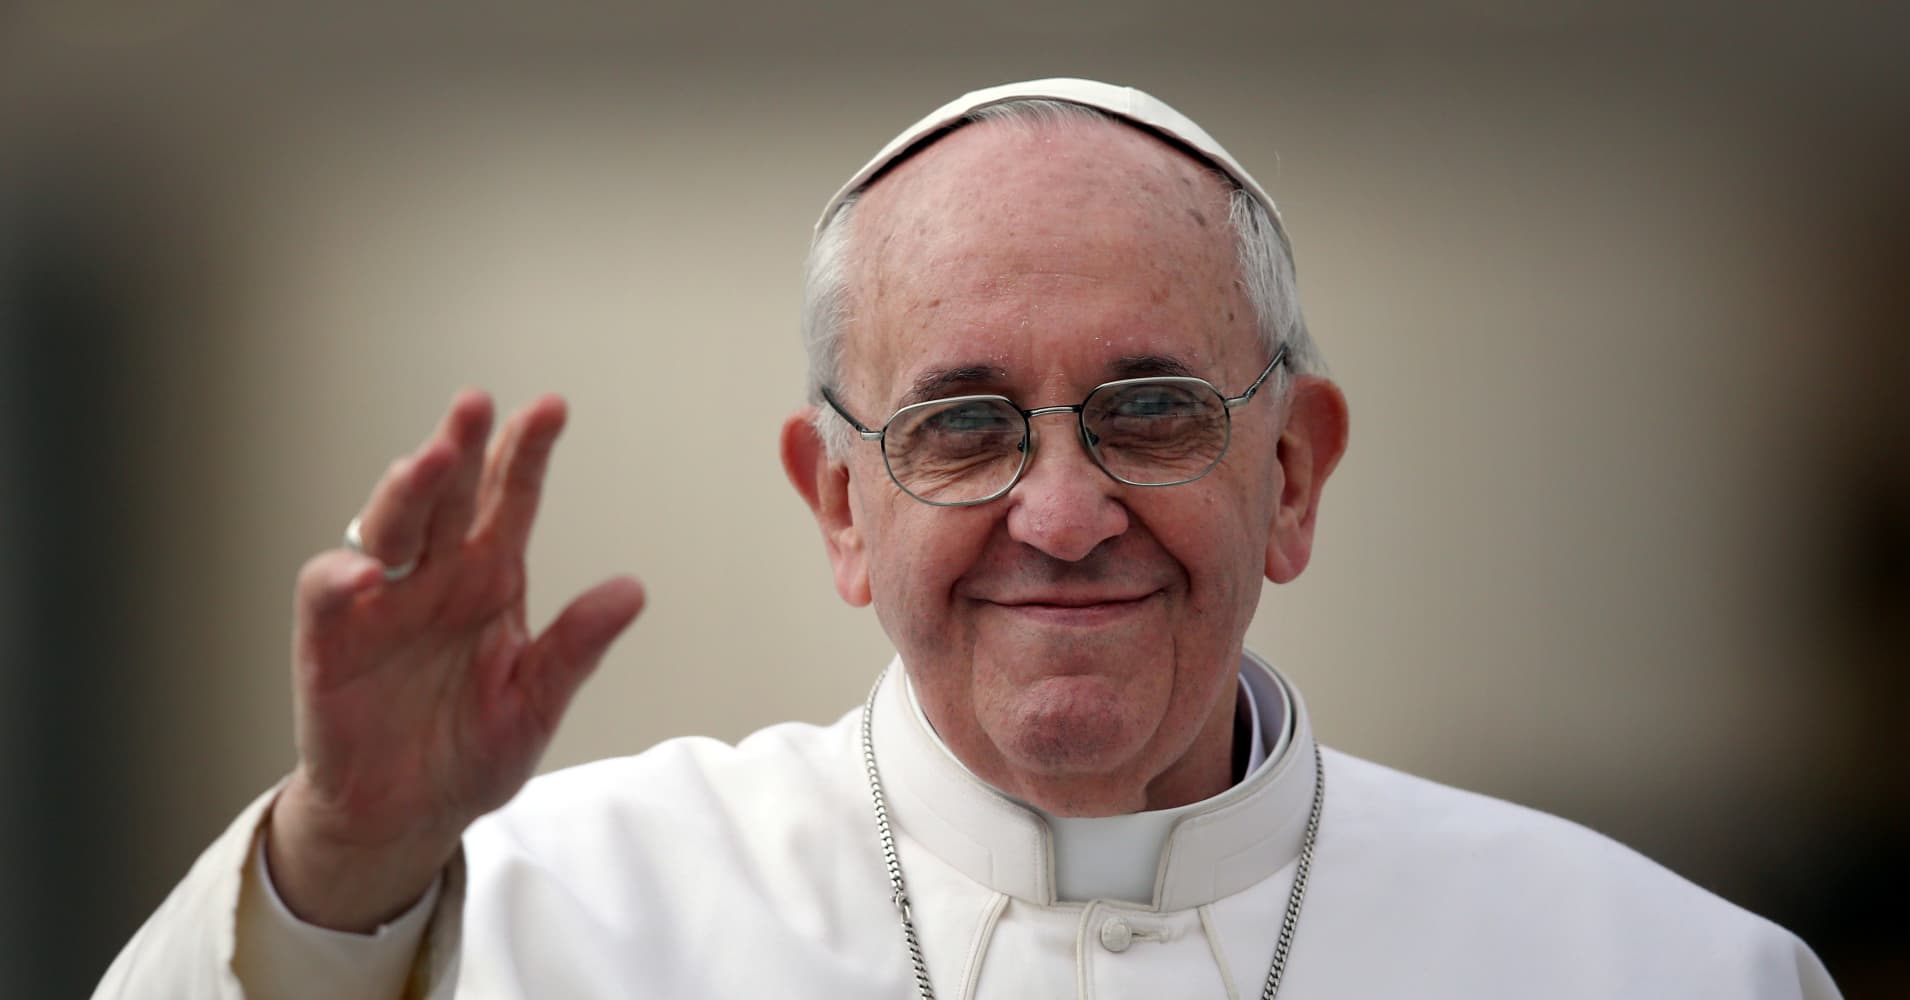 Copy this: Vatican stakes out rights to Pope Francis' image